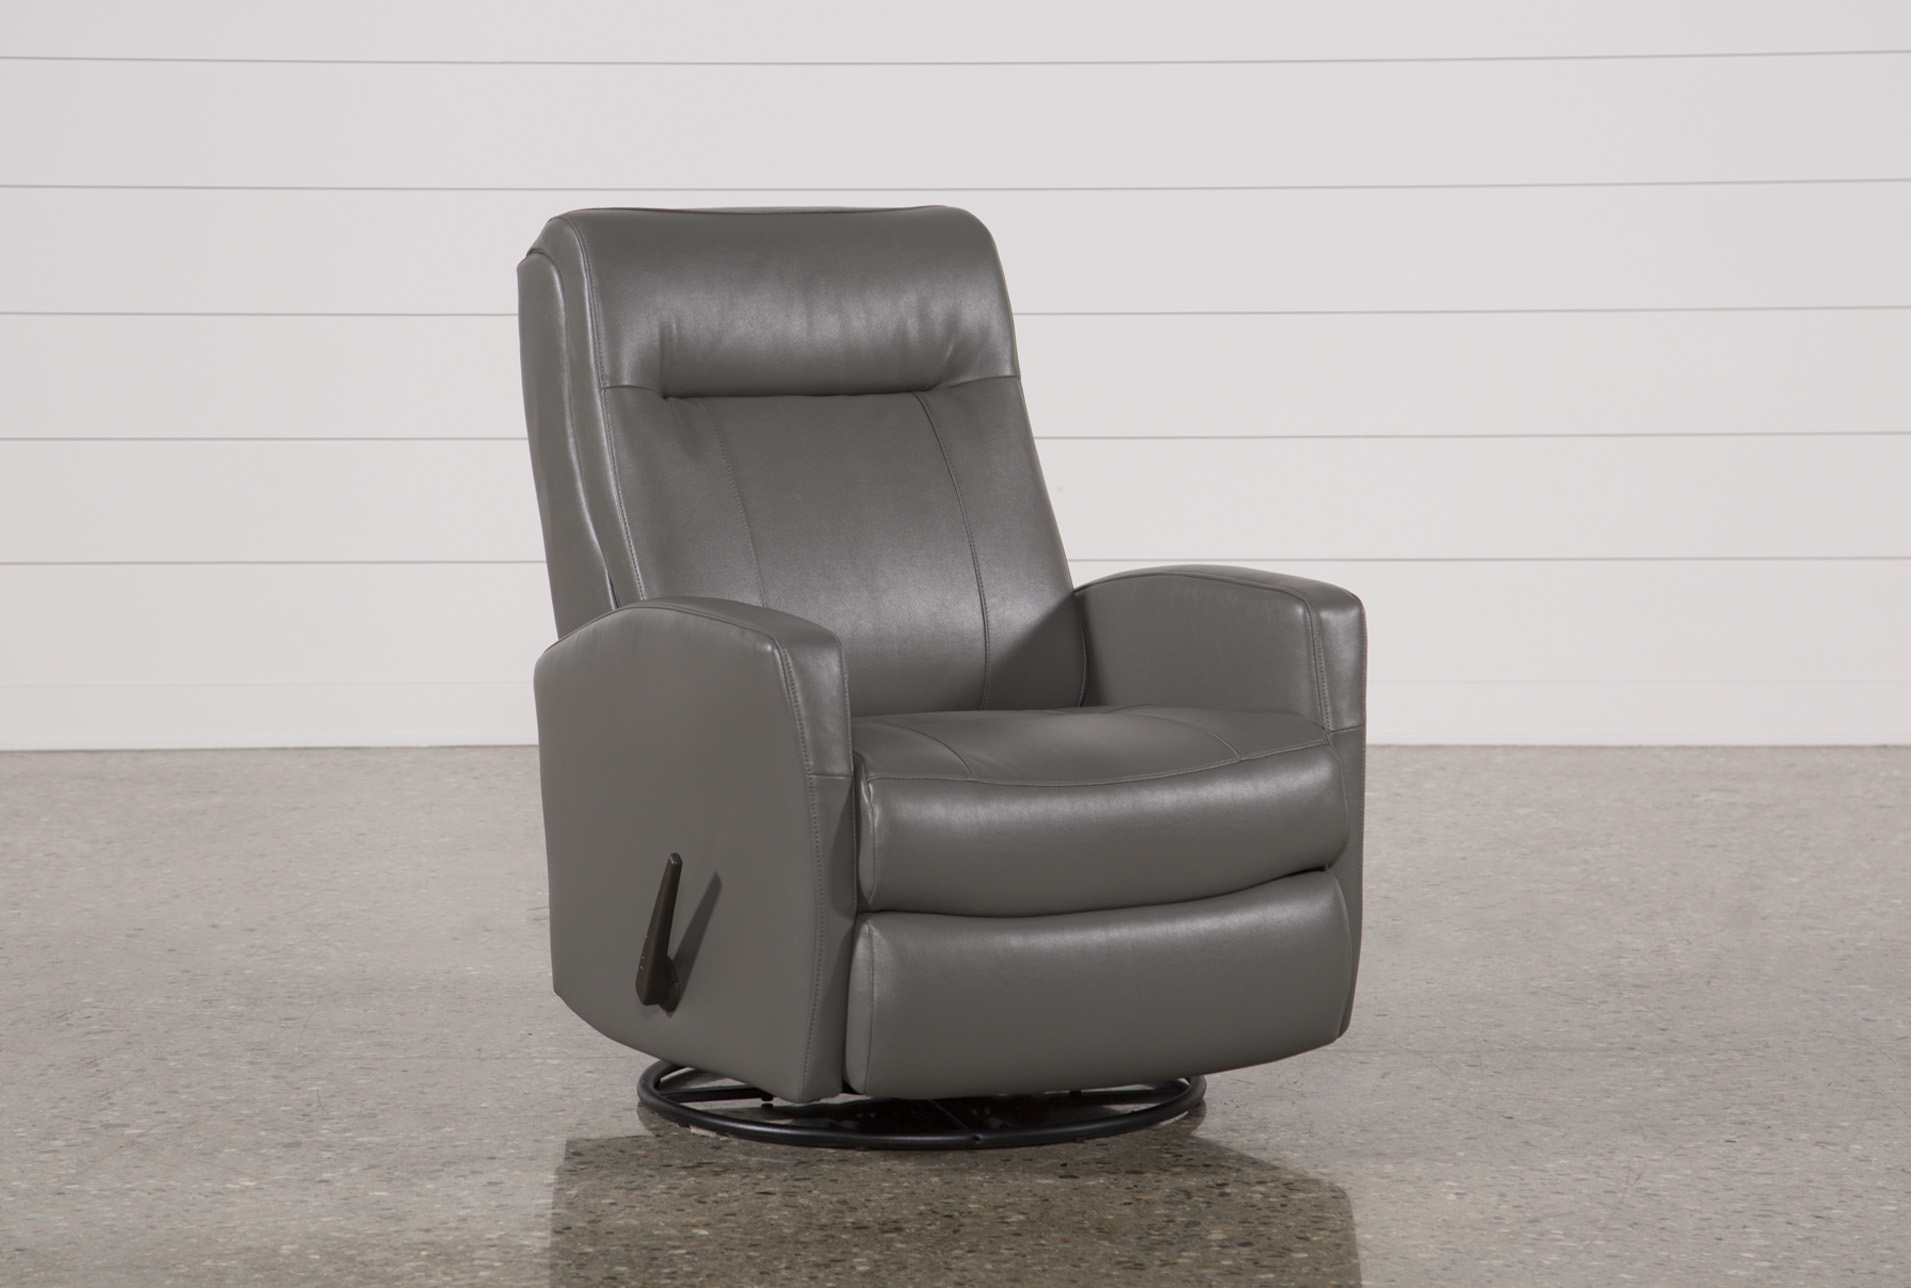 Delicieux Dale III Polyurethane Swivel Glider Recliner   360